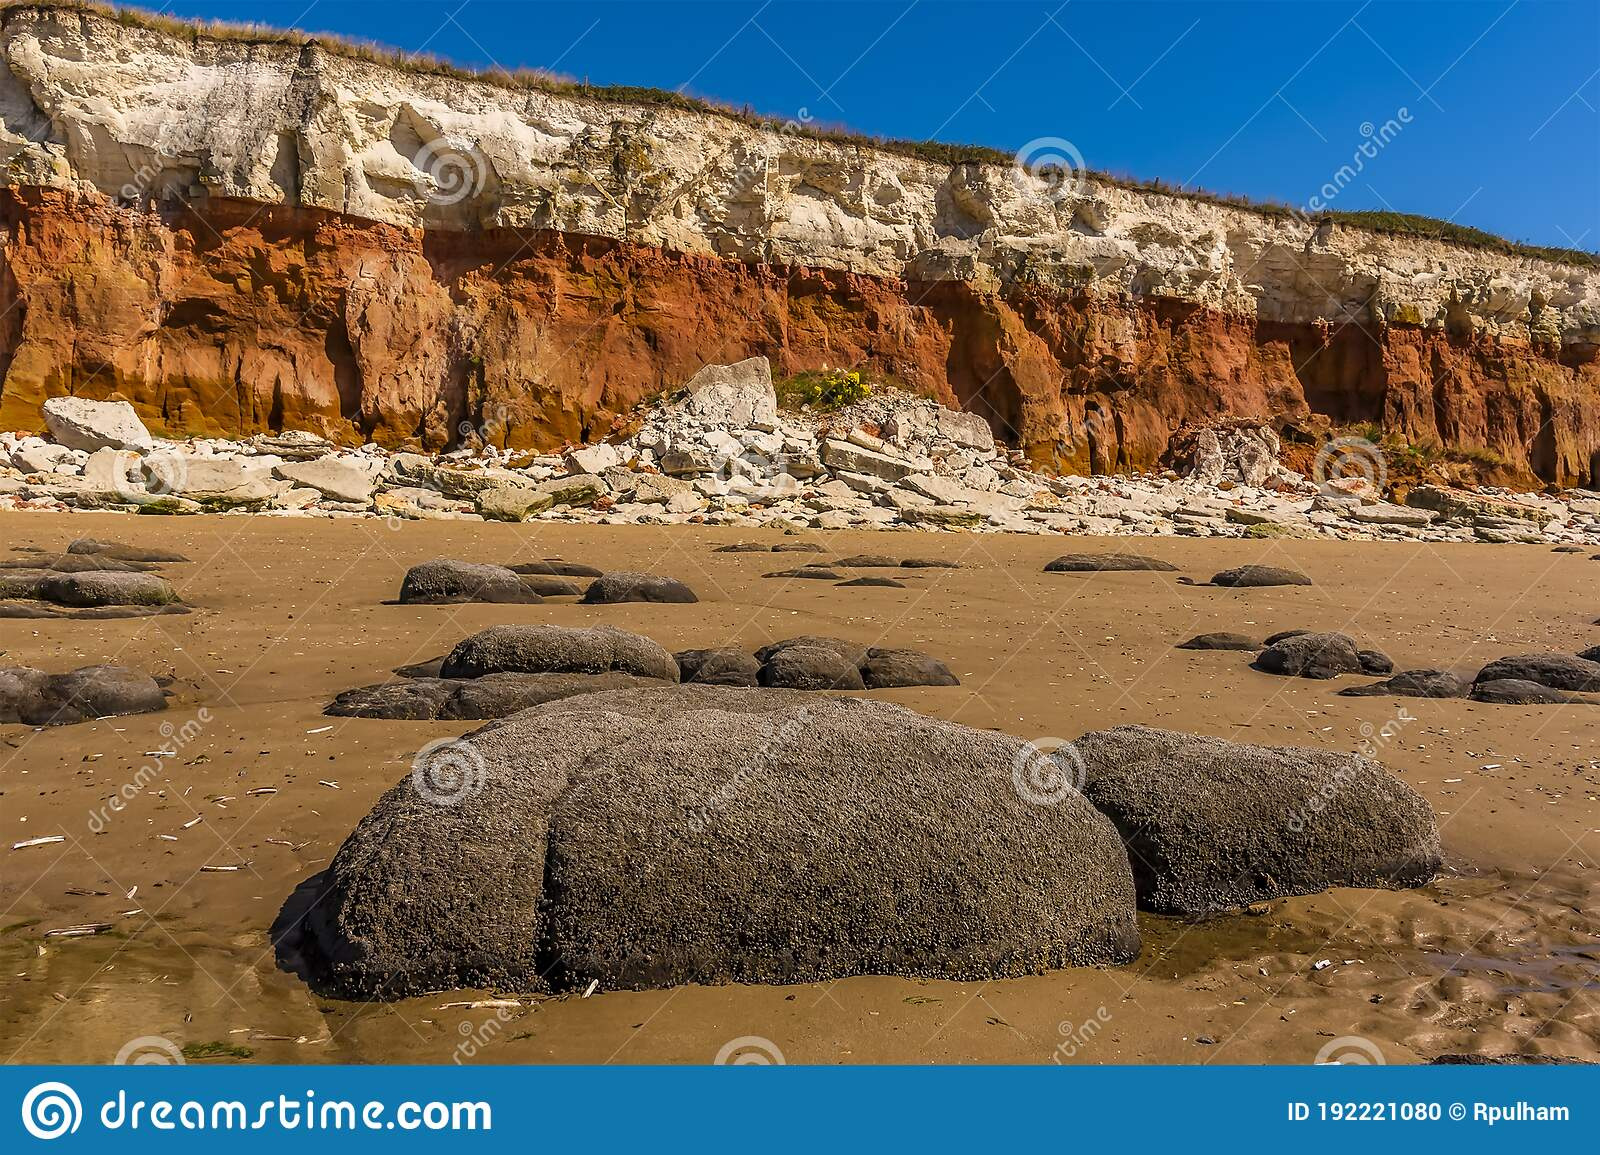 Sea eroded boulders in front of a chalk rock fall at the base of the cliffs at Old Hunstanton, Norfolk, UK